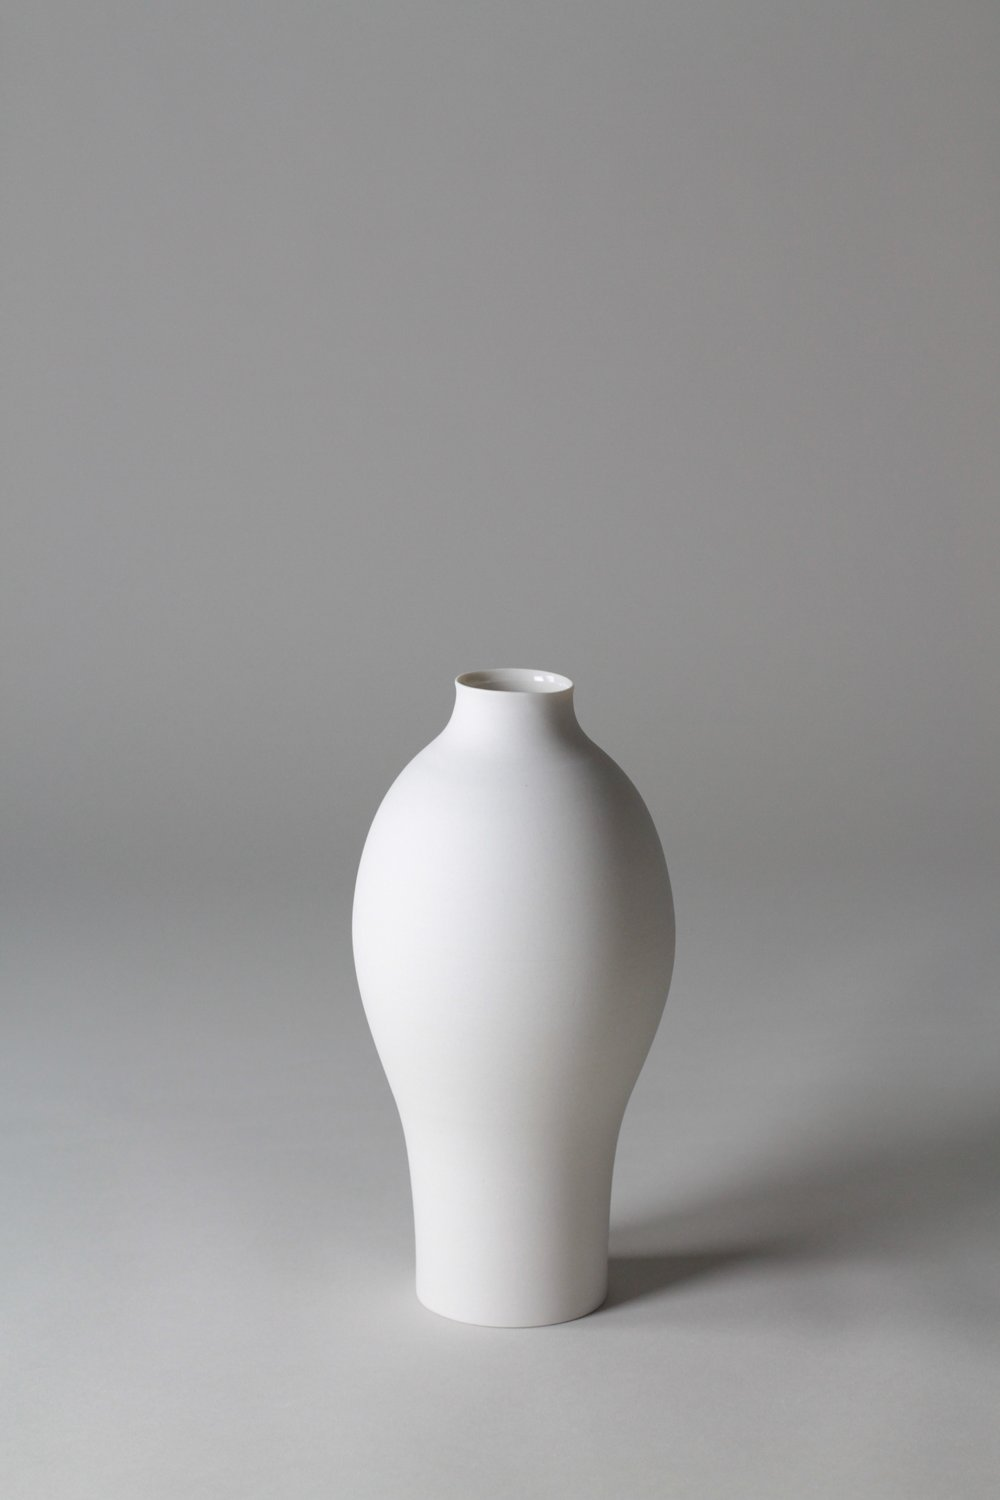 Ceramic vases by Lilith Rockett in Portland, Oregon